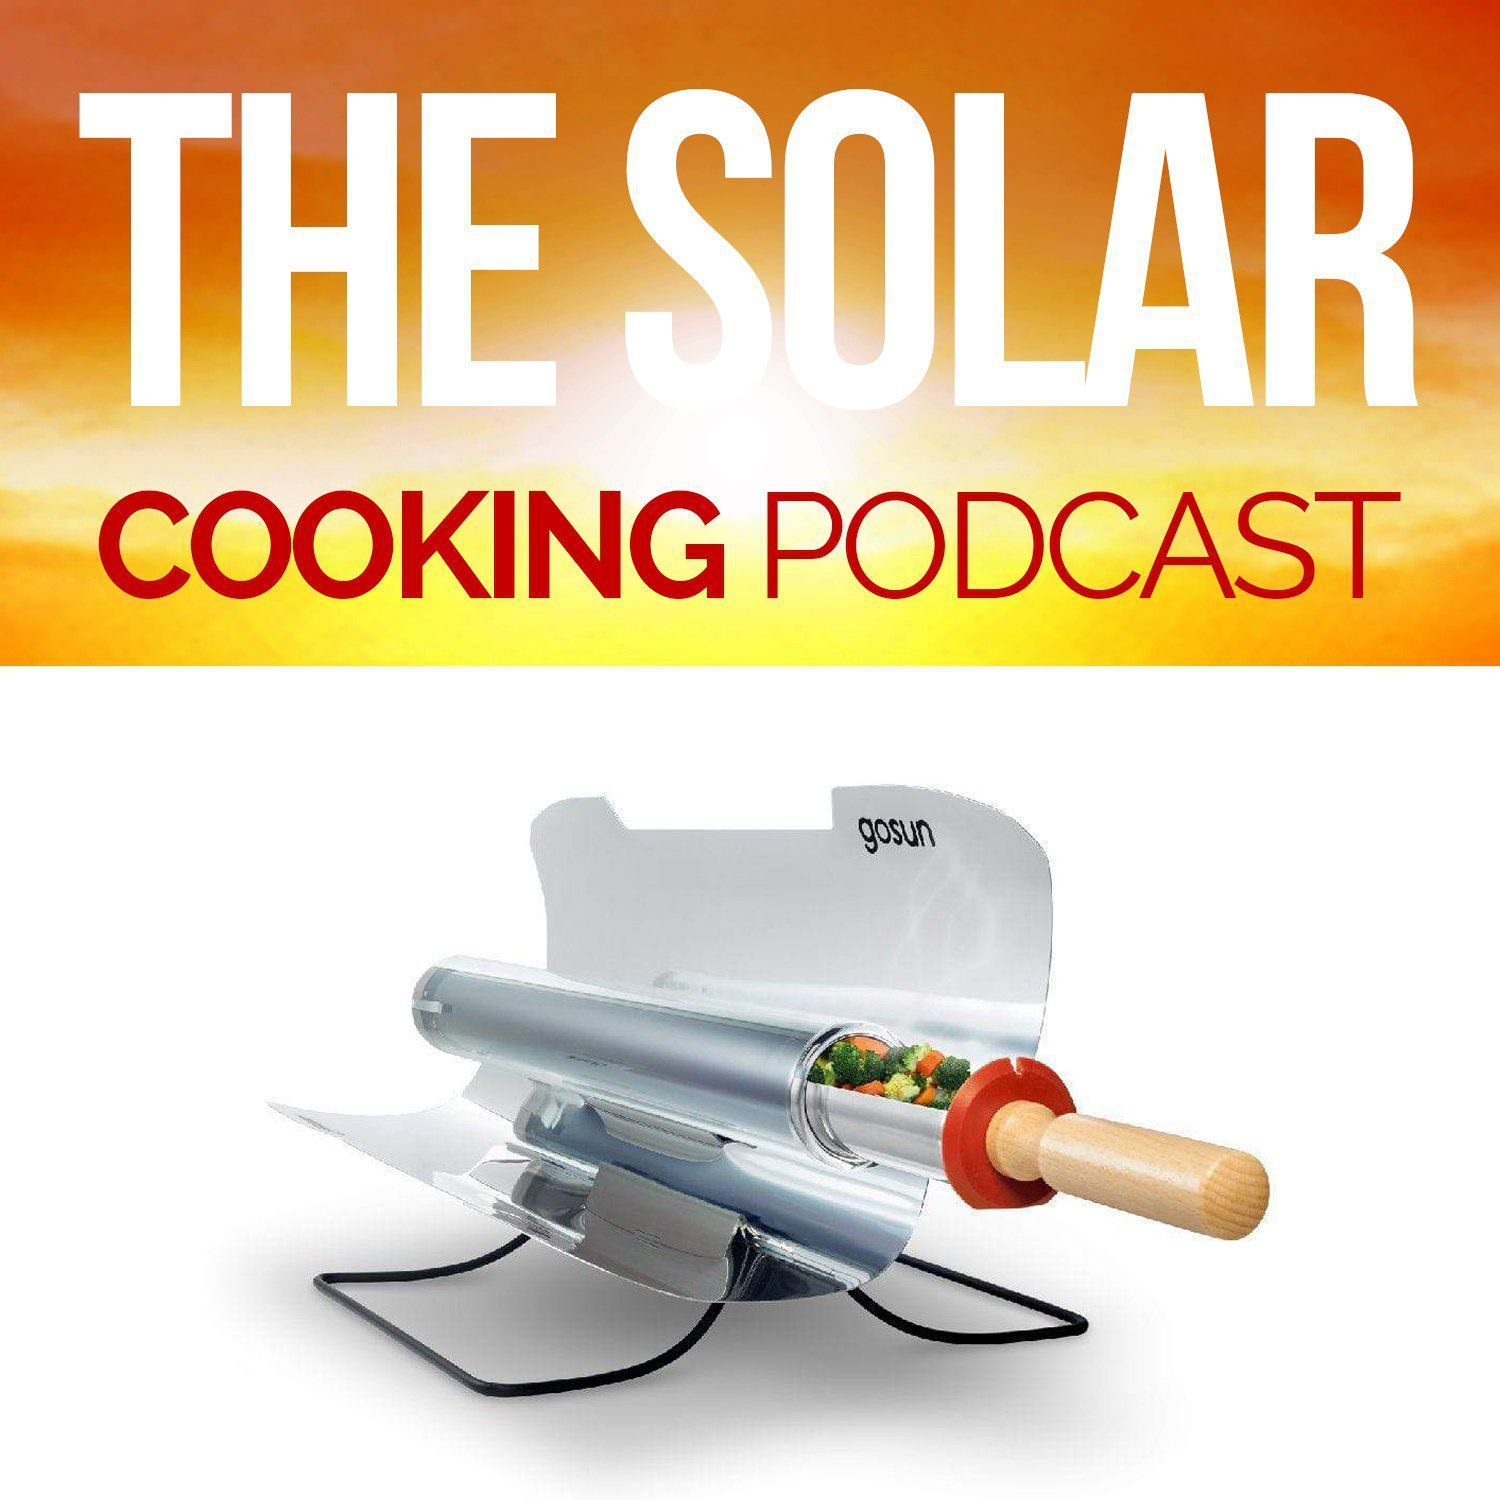 S1 Ep7: The Health Benefits of Solar Cooking